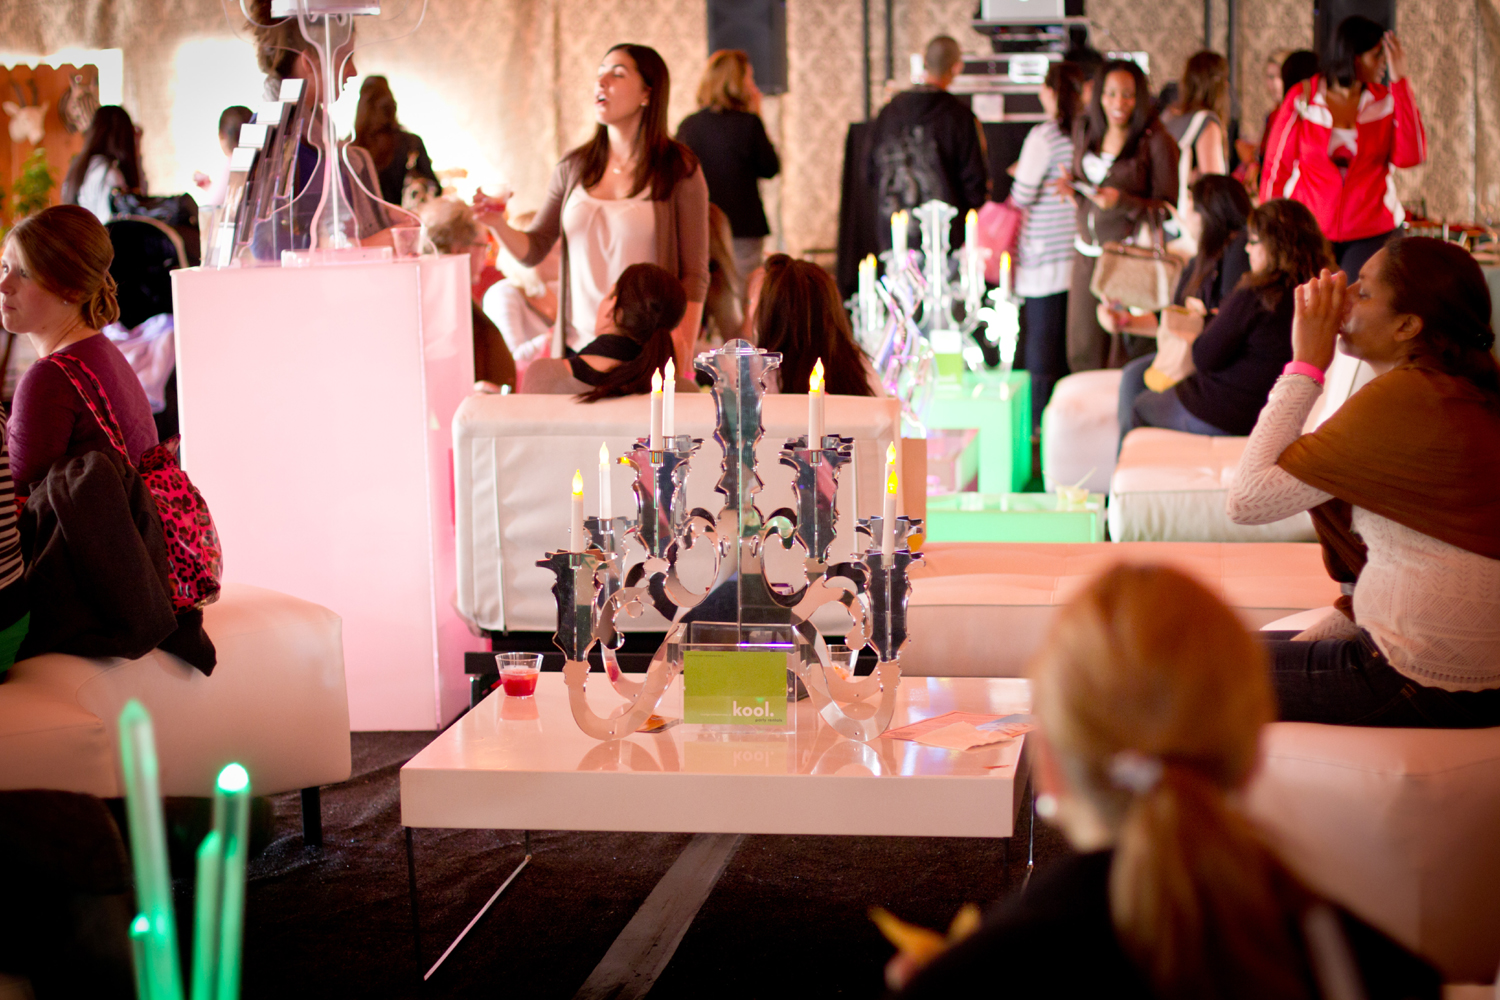 Lively and comfortable sponsor spaces attact attendees like flies to honey like at this  kool party rentals  lounge at the Hard Rock Hotel  Wedding Party EXPO